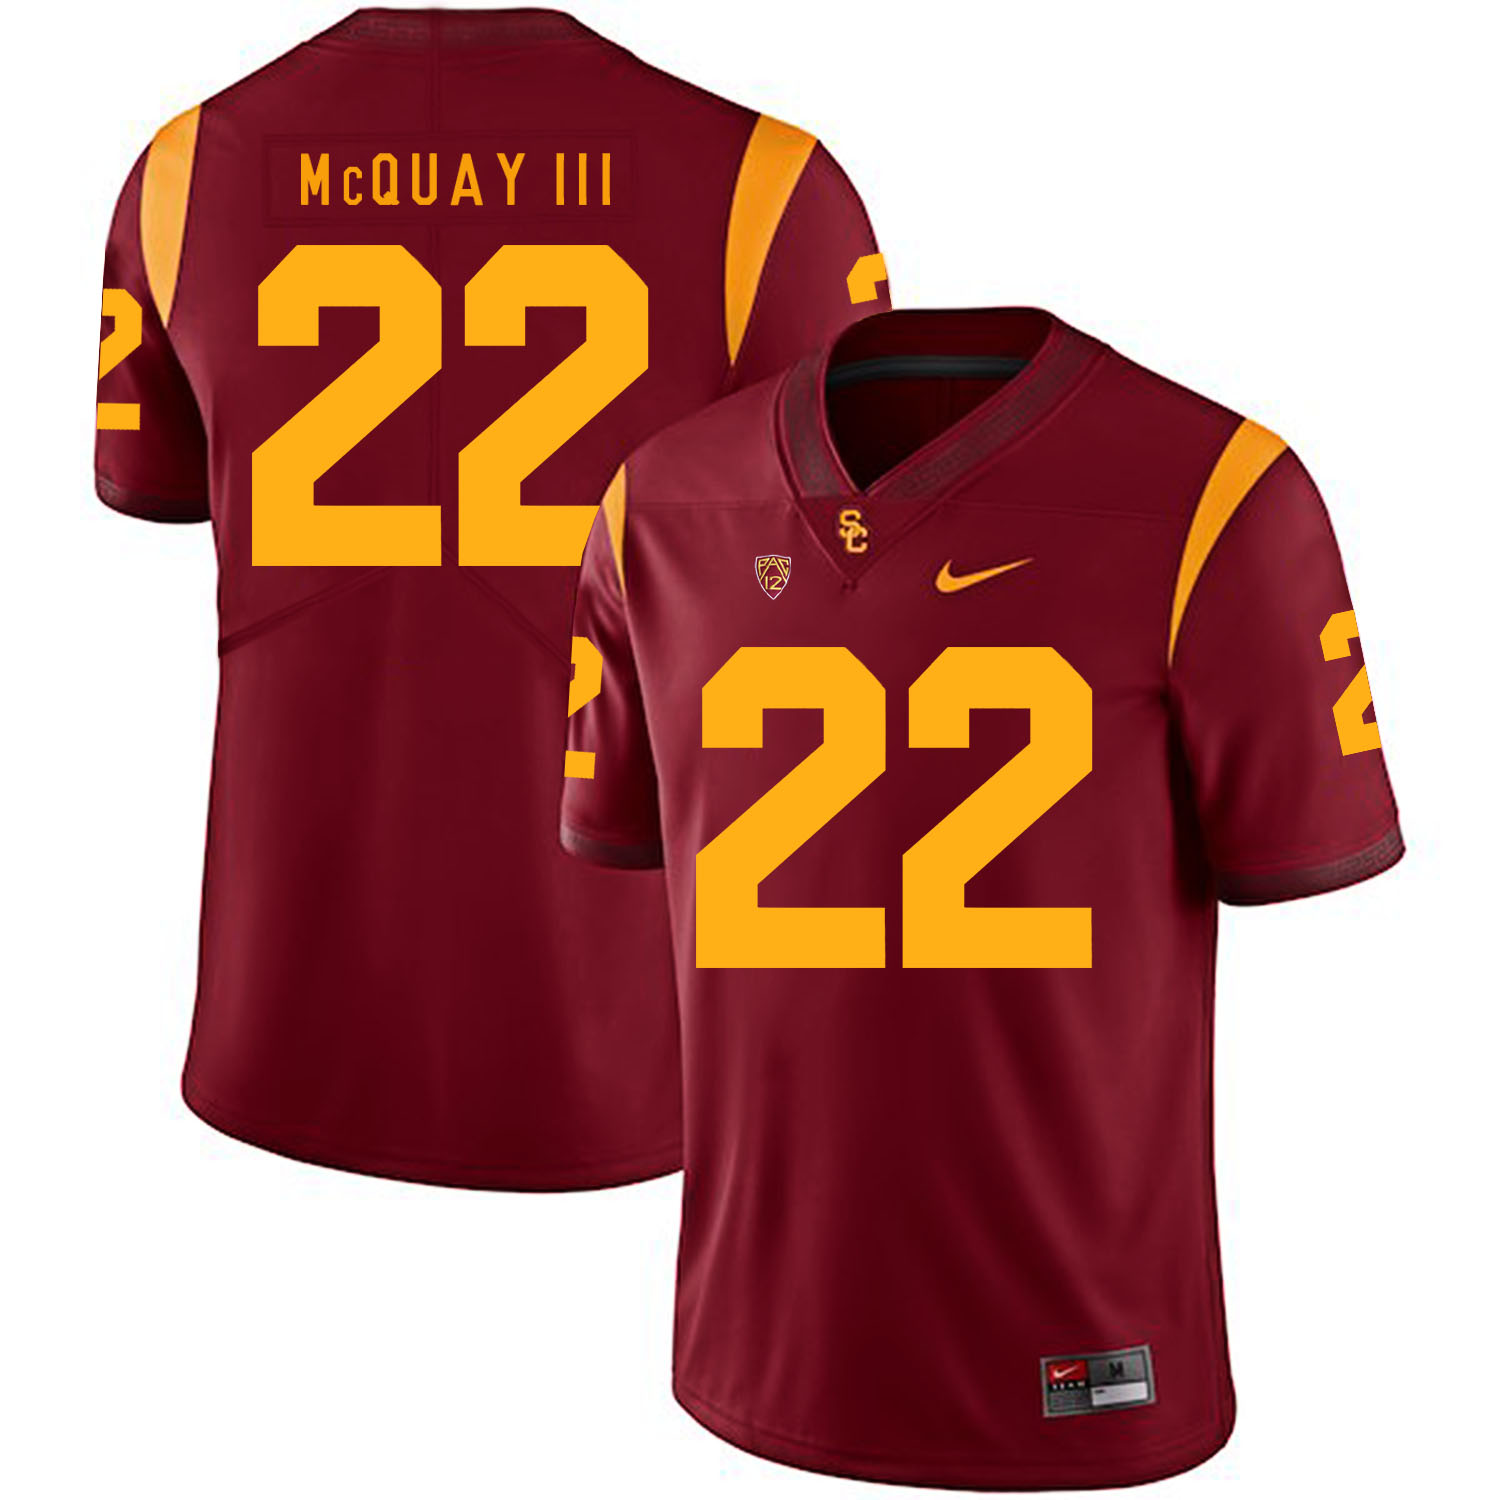 USC Trojans 22 Leon McQuay III Red College Football Jersey